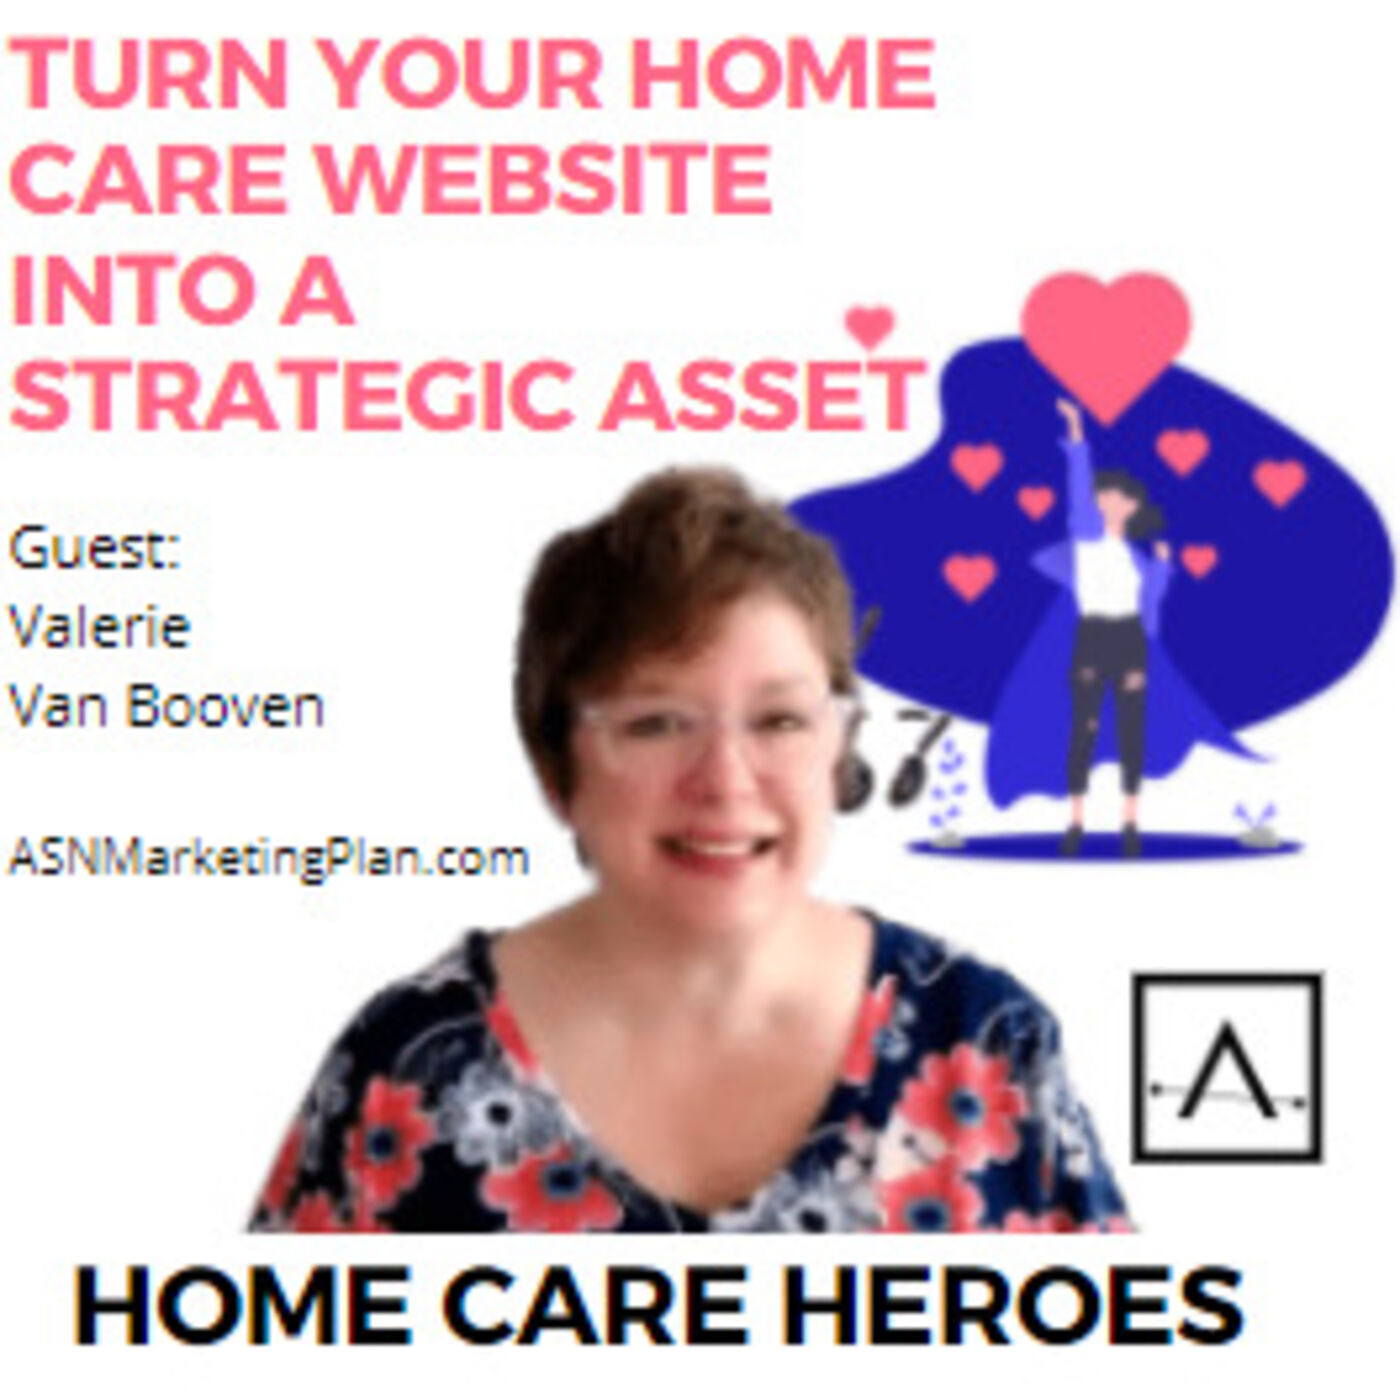 Turn your home care website into a strategic asset (with Valerie Van Booven)